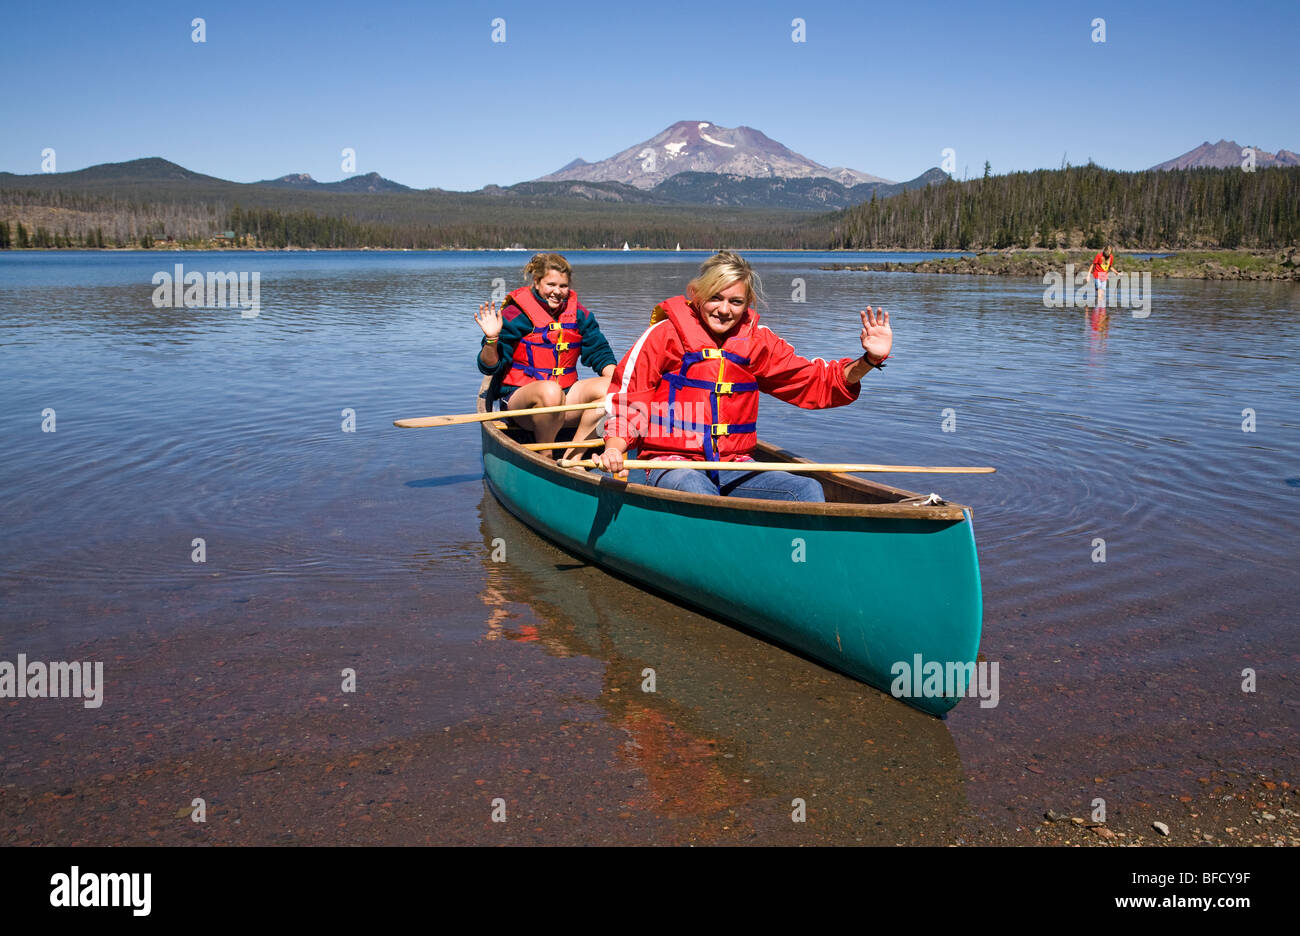 Girls Wearing Life Jackets On Stock Photos Amp Girls Wearing